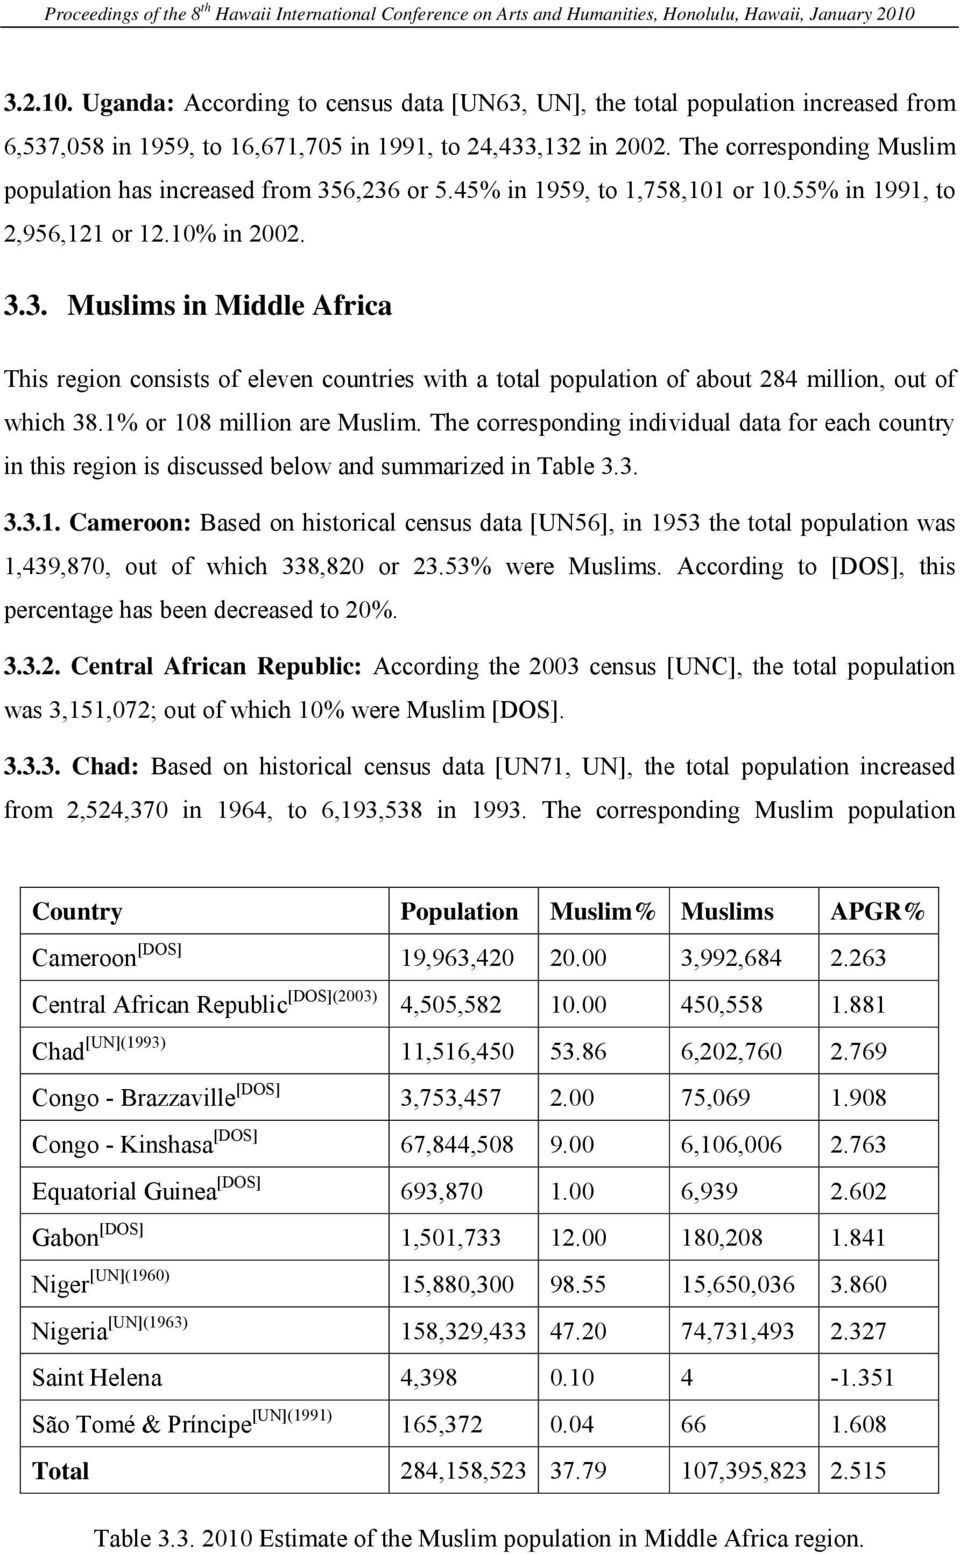 1% or 108 million are Muslim. The corresponding individual data for each country in this region is discussed below and summarized in Table 3.3. 3.3.1. Cameroon: Based on historical census data [UN56], in 1953 the total population was 1,439,870, out of which 338,820 or 23.